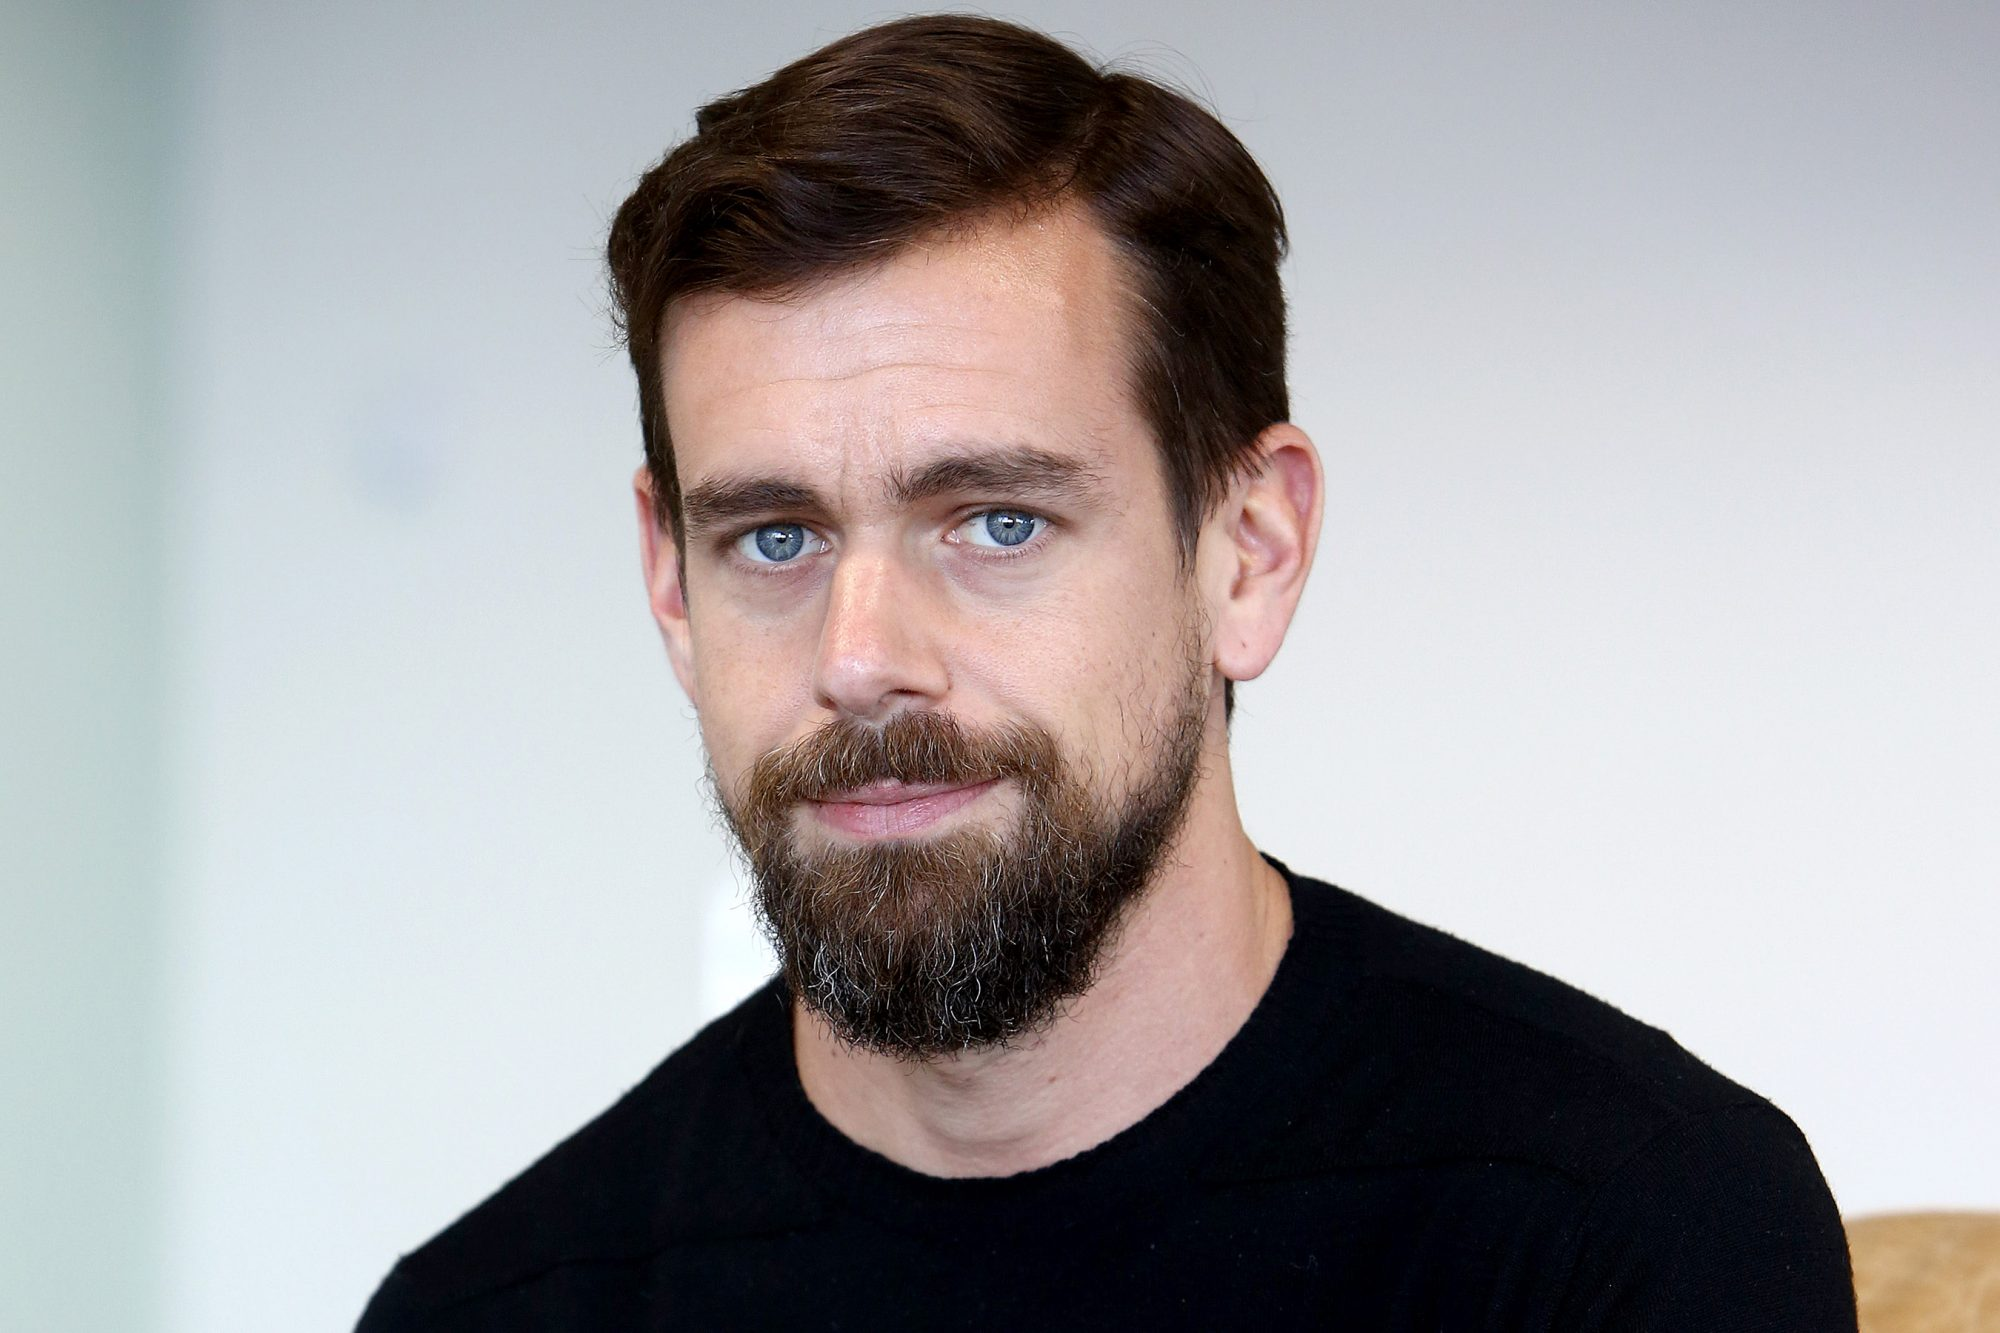 """The Twitter CEO revealed that he eats only one meal per day: """"Just dinner,"""" he said during a Q&A with fans in a video for Wired. The surprising fact, however, aligns with Dorsey's daily practice of intermittent fasting, which he opened up about on the Fitness: Diet, Fat Loss and Performance podcast.                             During the interview, Dorsey explained that intermittent fasting, walking to work and hydrotherapy are all elements that help him perform at a high level every day. He went on to share that he eats once at dinnertime, between the hours of 6:30 and 9 p.m., usually a meal of protein and vegetables.                             """"During the day, I feel so much more focused,"""" he said on the podcast of his fasting. """"You have this very focused point of mind in terms of this drive. The time back from breakfast and lunch allowed me to focus more on what my day is."""""""